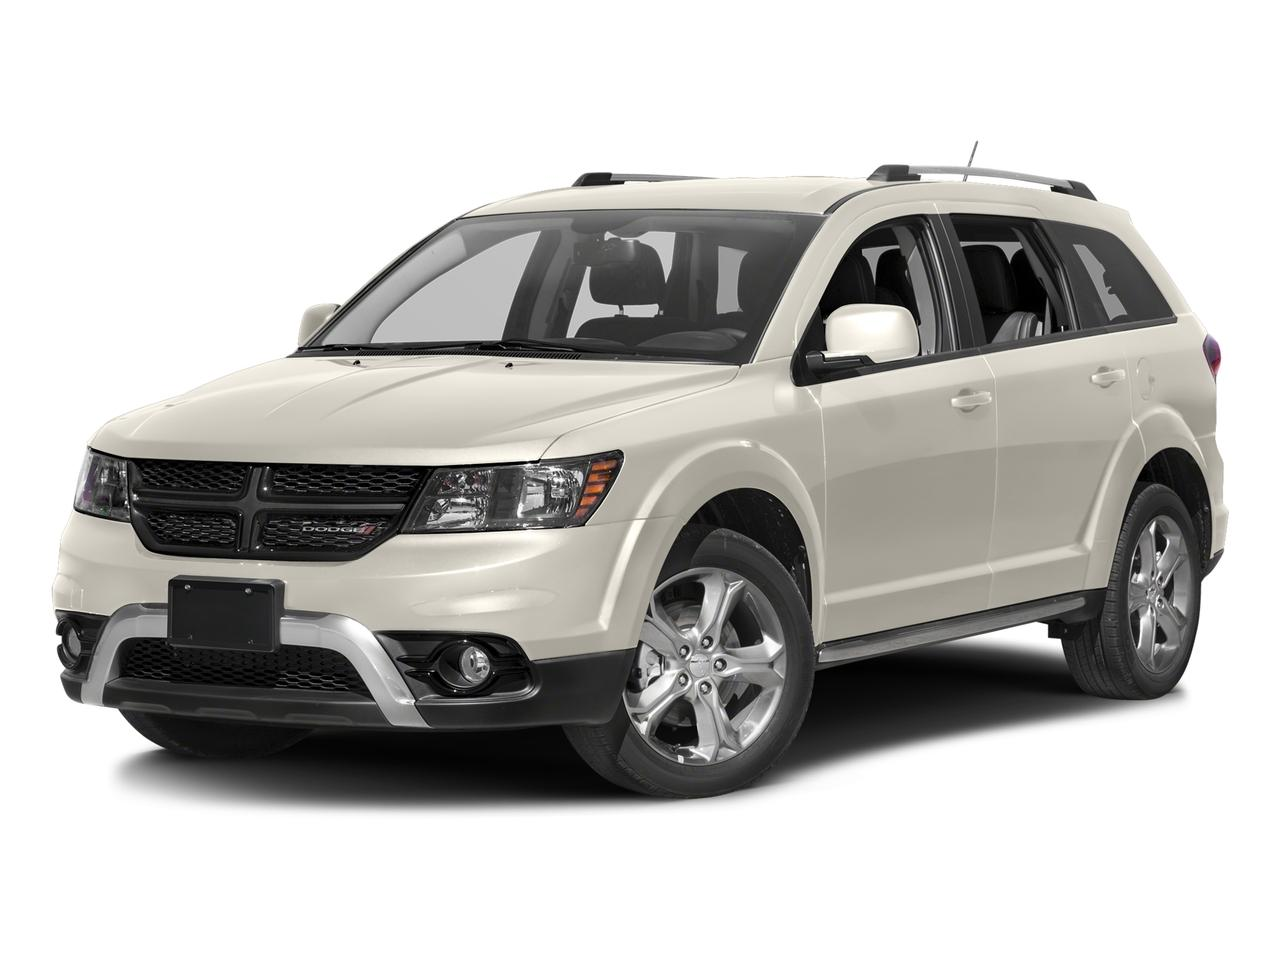 2017 Dodge Journey Vehicle Photo in Edinburg, TX 78539